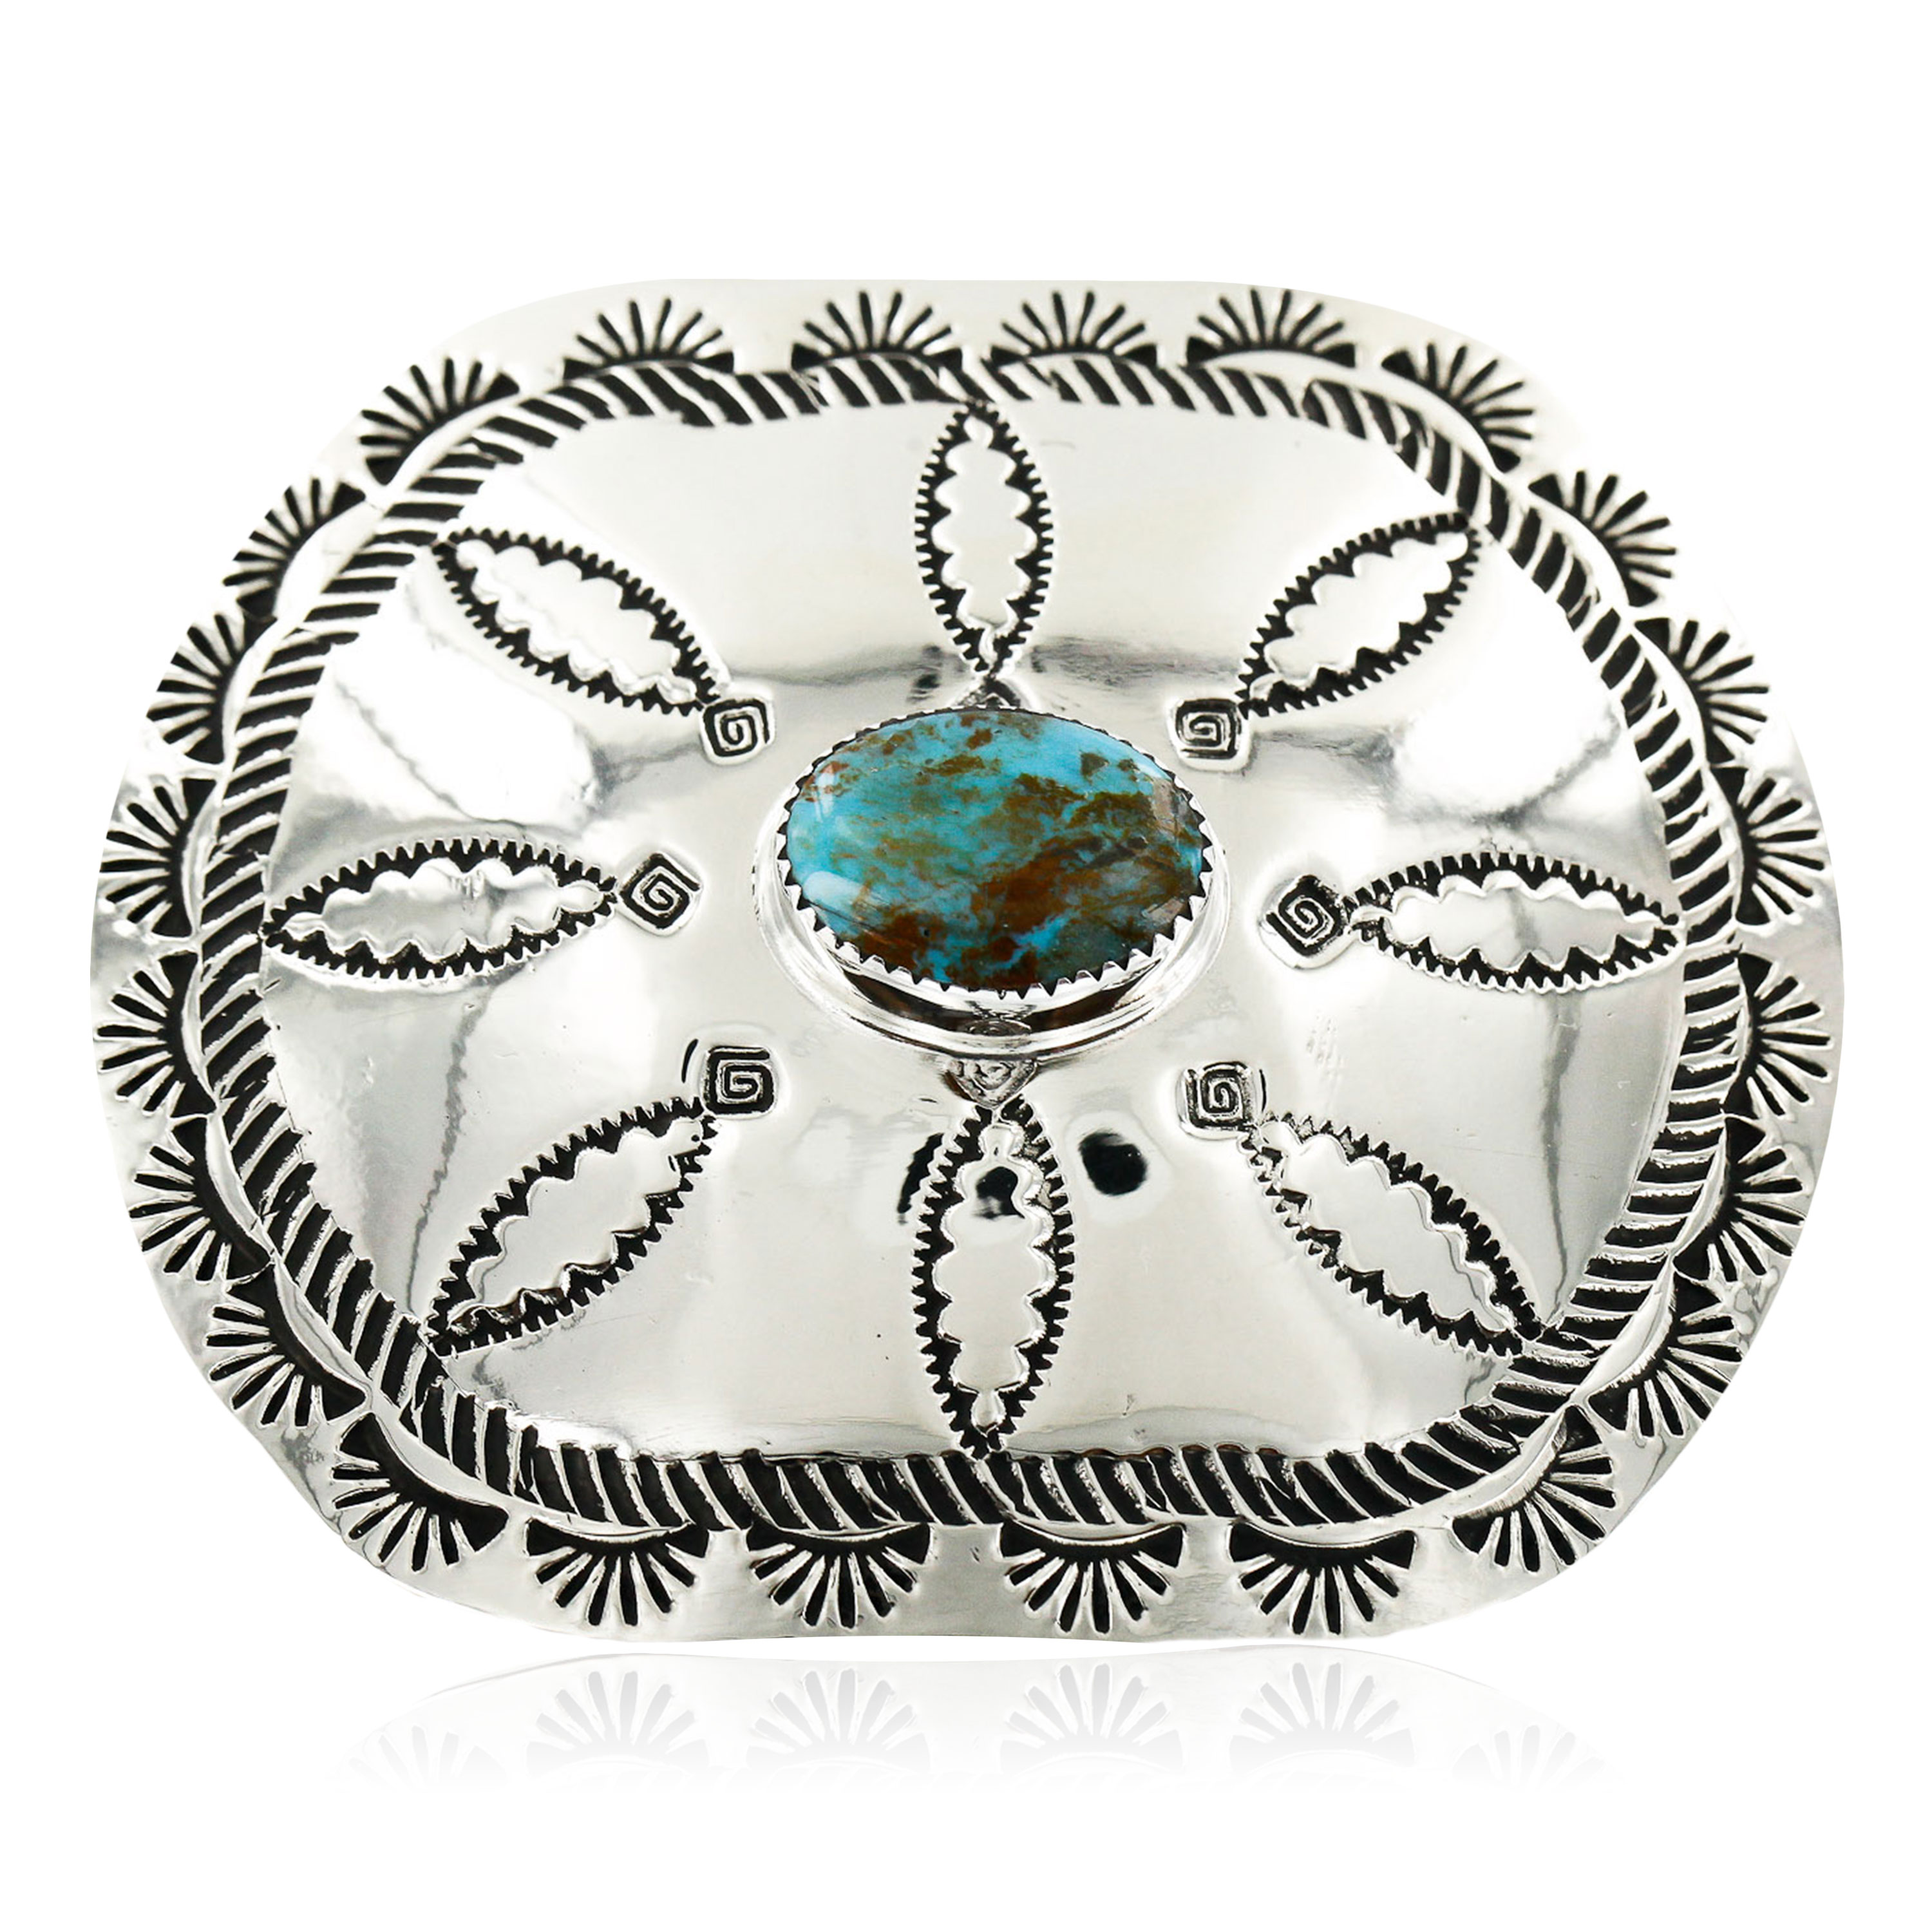 Certified Authentic Flower Navajo Nickel Natural Turquoise Native American Buckle 1204 All Products 1204 1204 (by LomaSiiva)